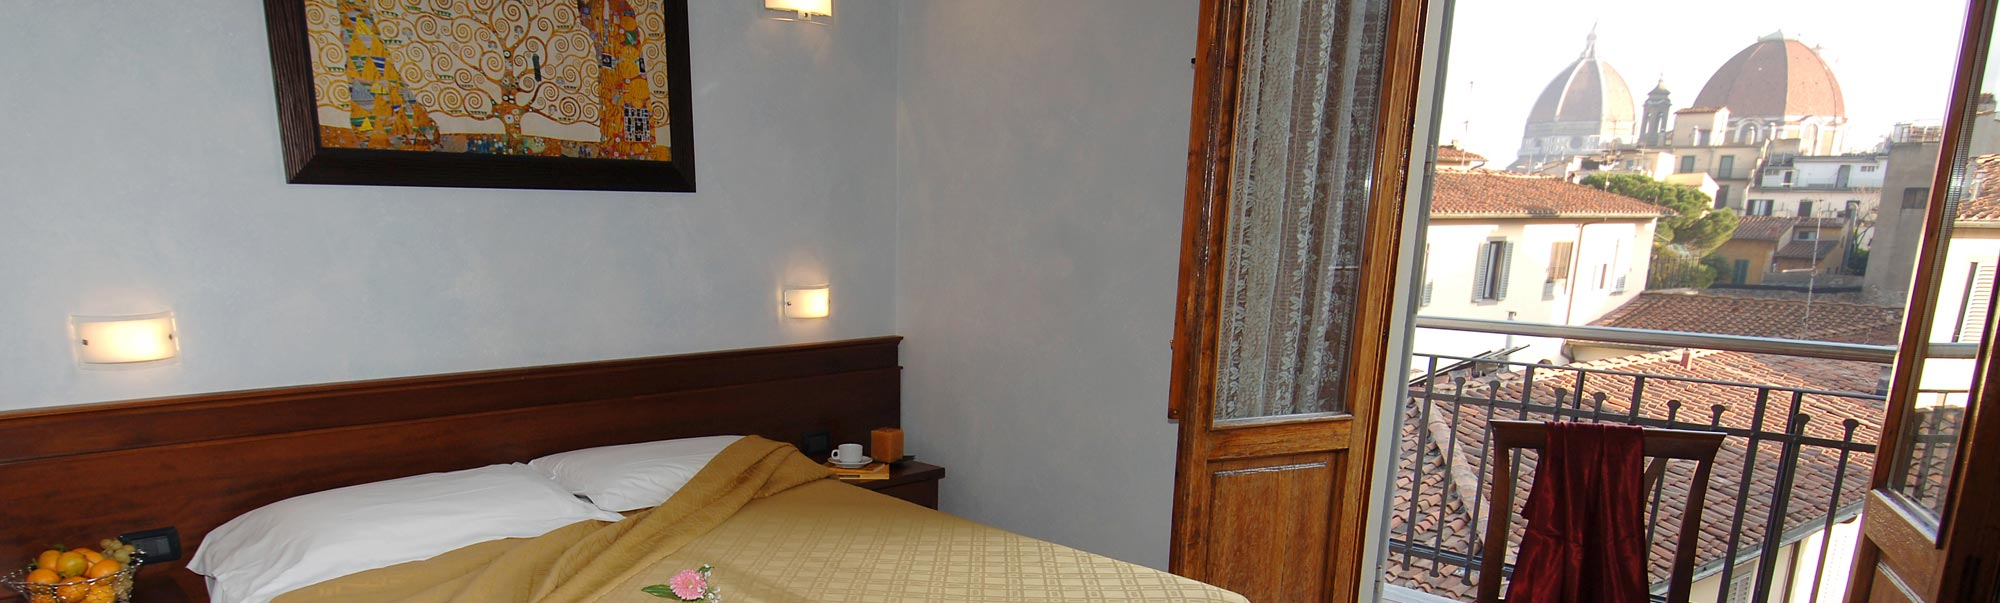 Hotel Palazzo Vecchio Florence Center - Official Site | 3 Stars Hotel Firenze